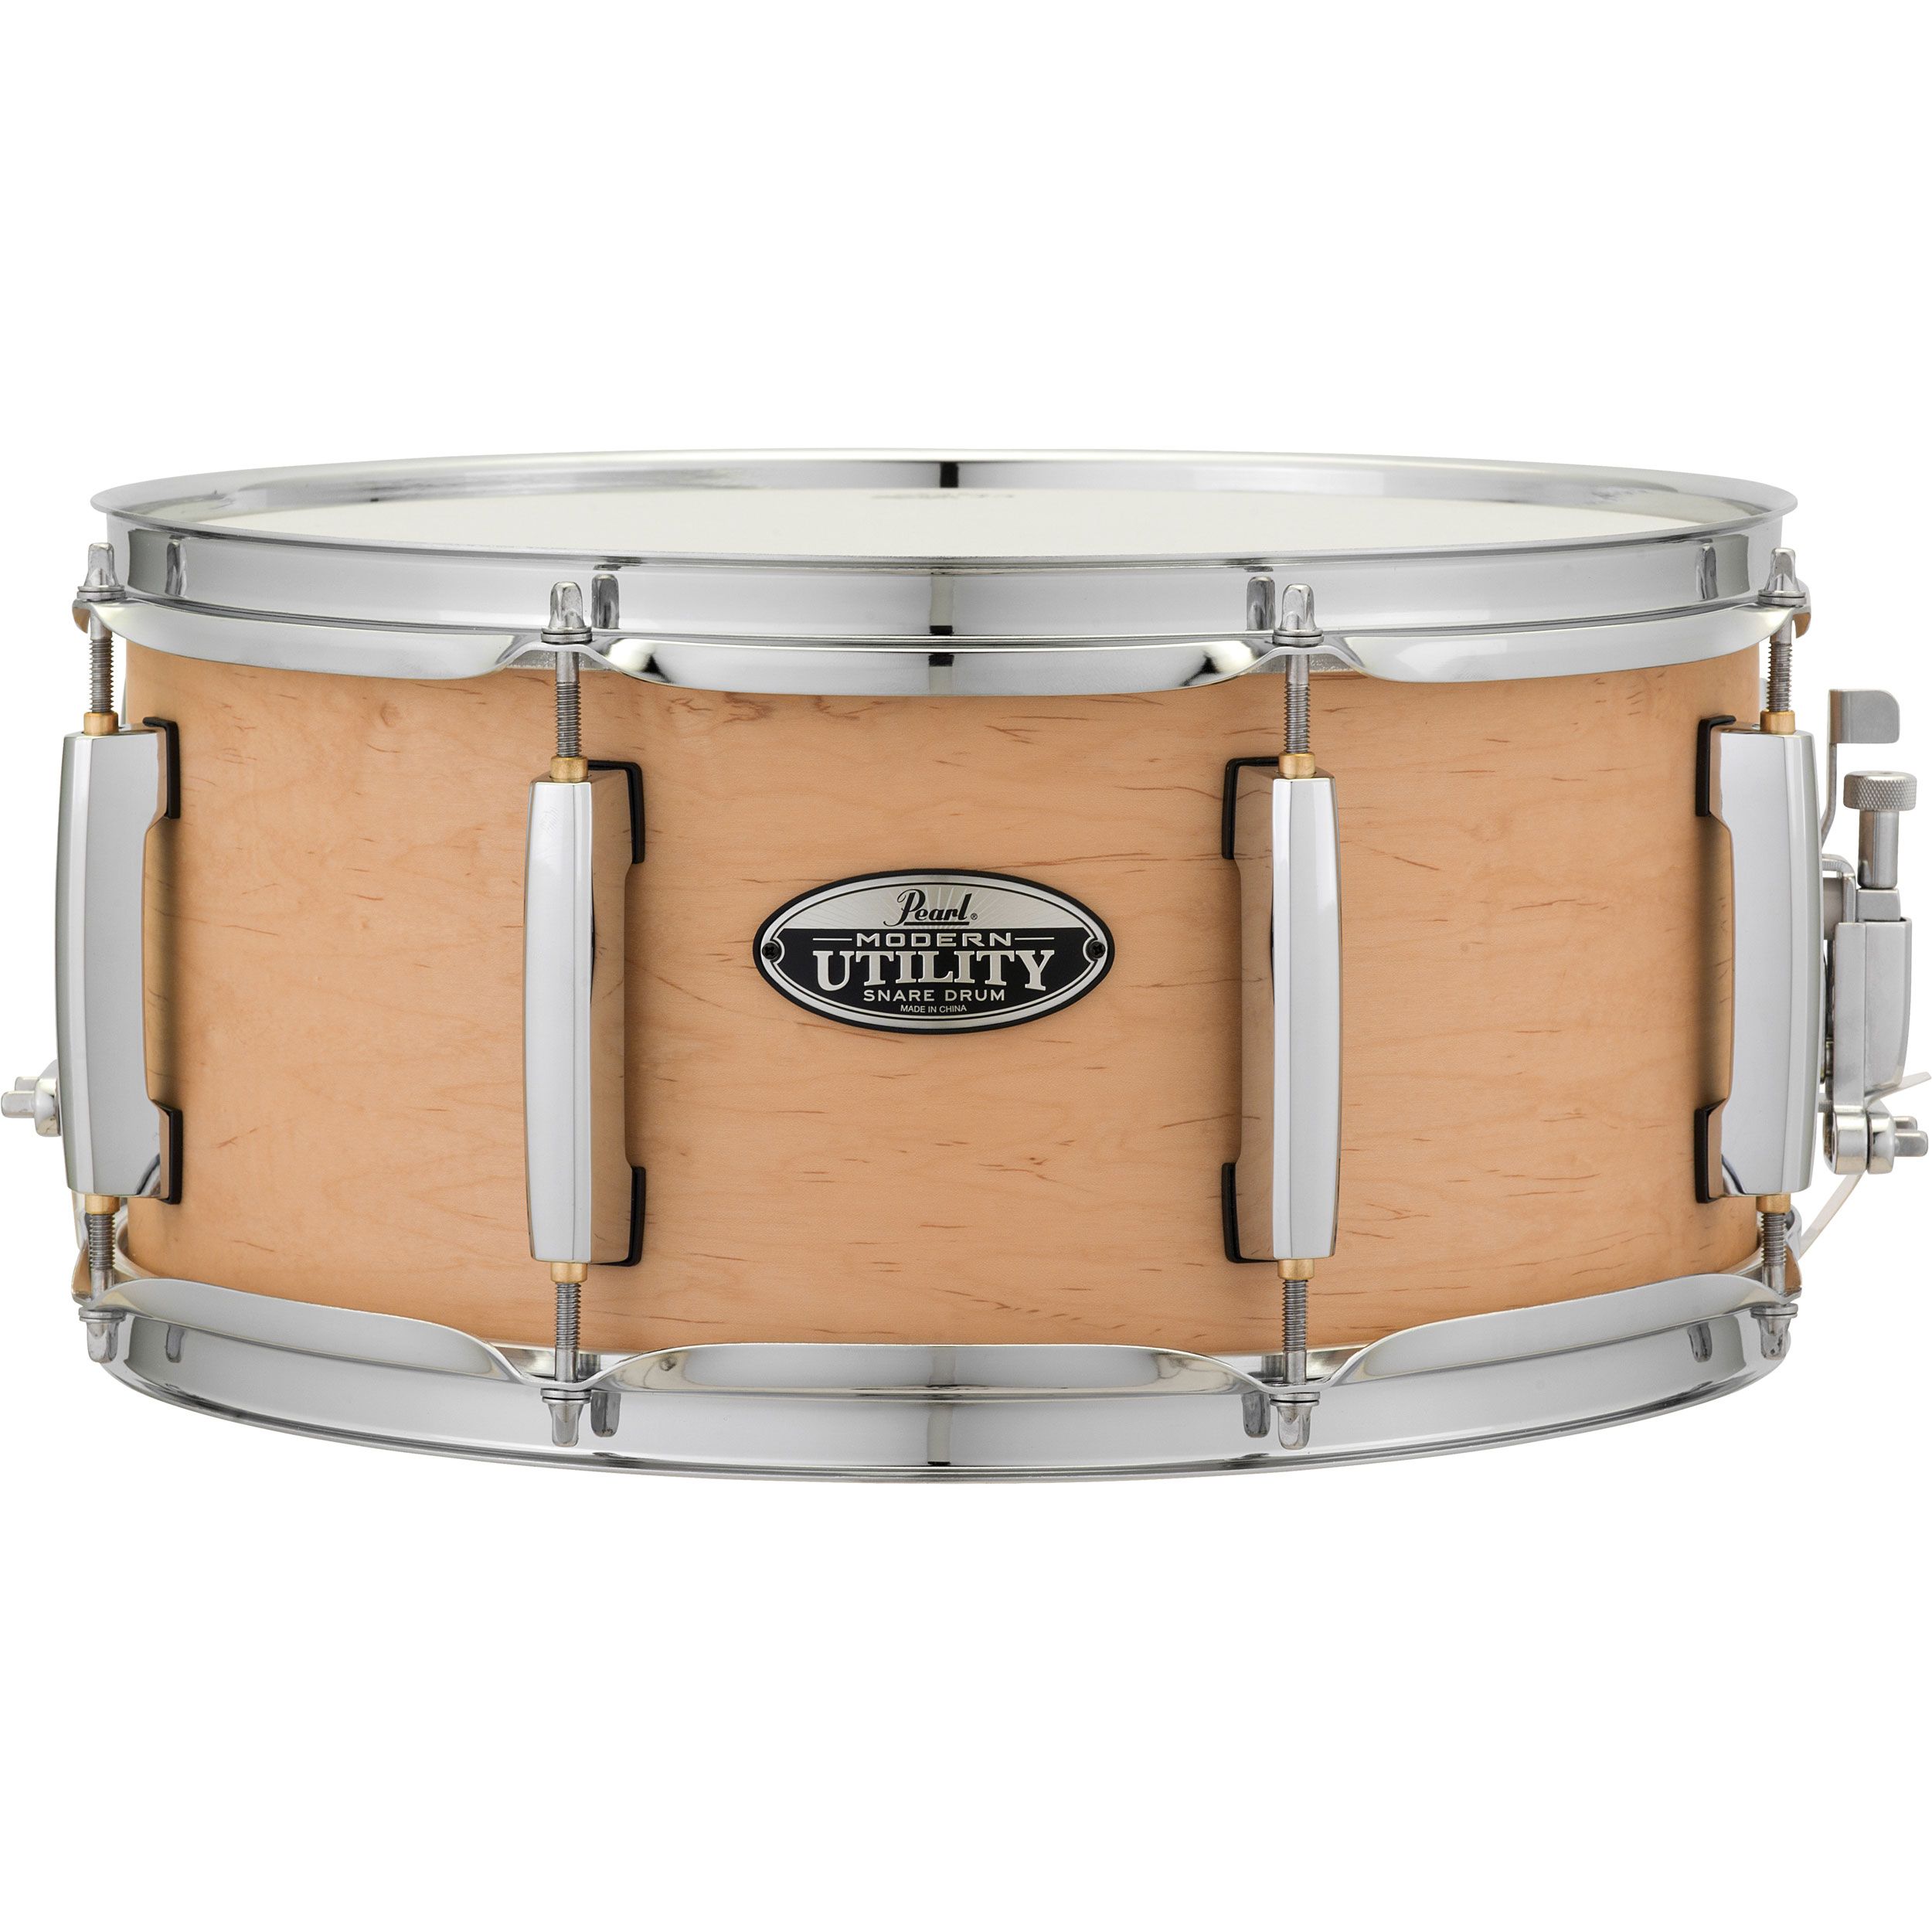 """Pearl 14"""" x 6.5"""" Modern Utility Maple Snare Drum"""